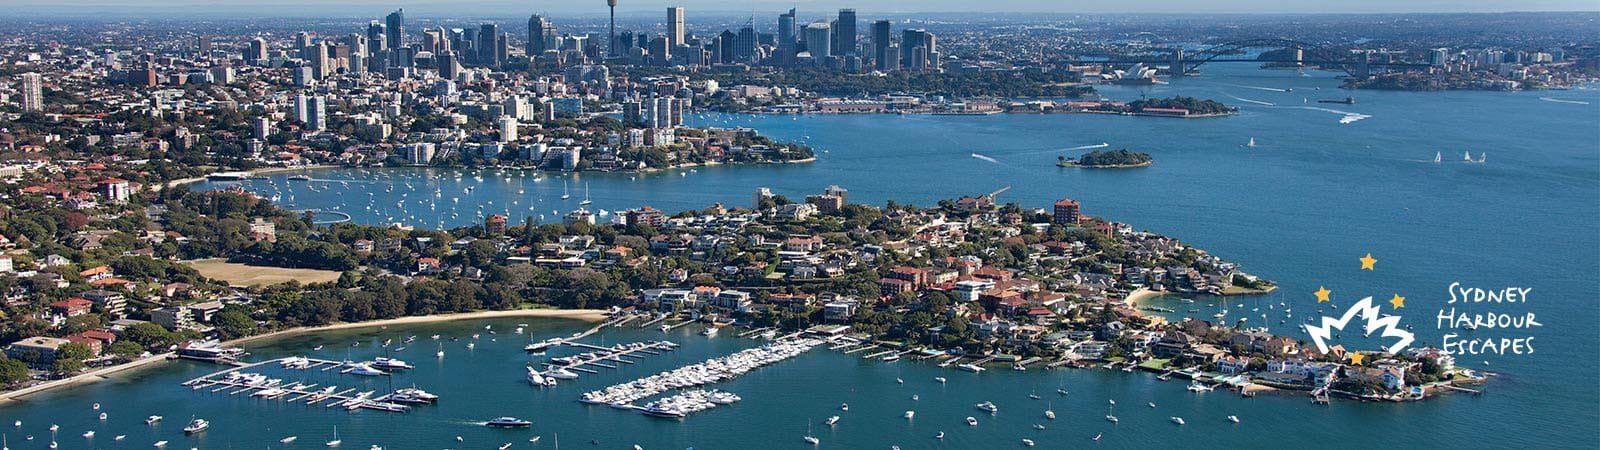 Find Sydney Harbour Escapes